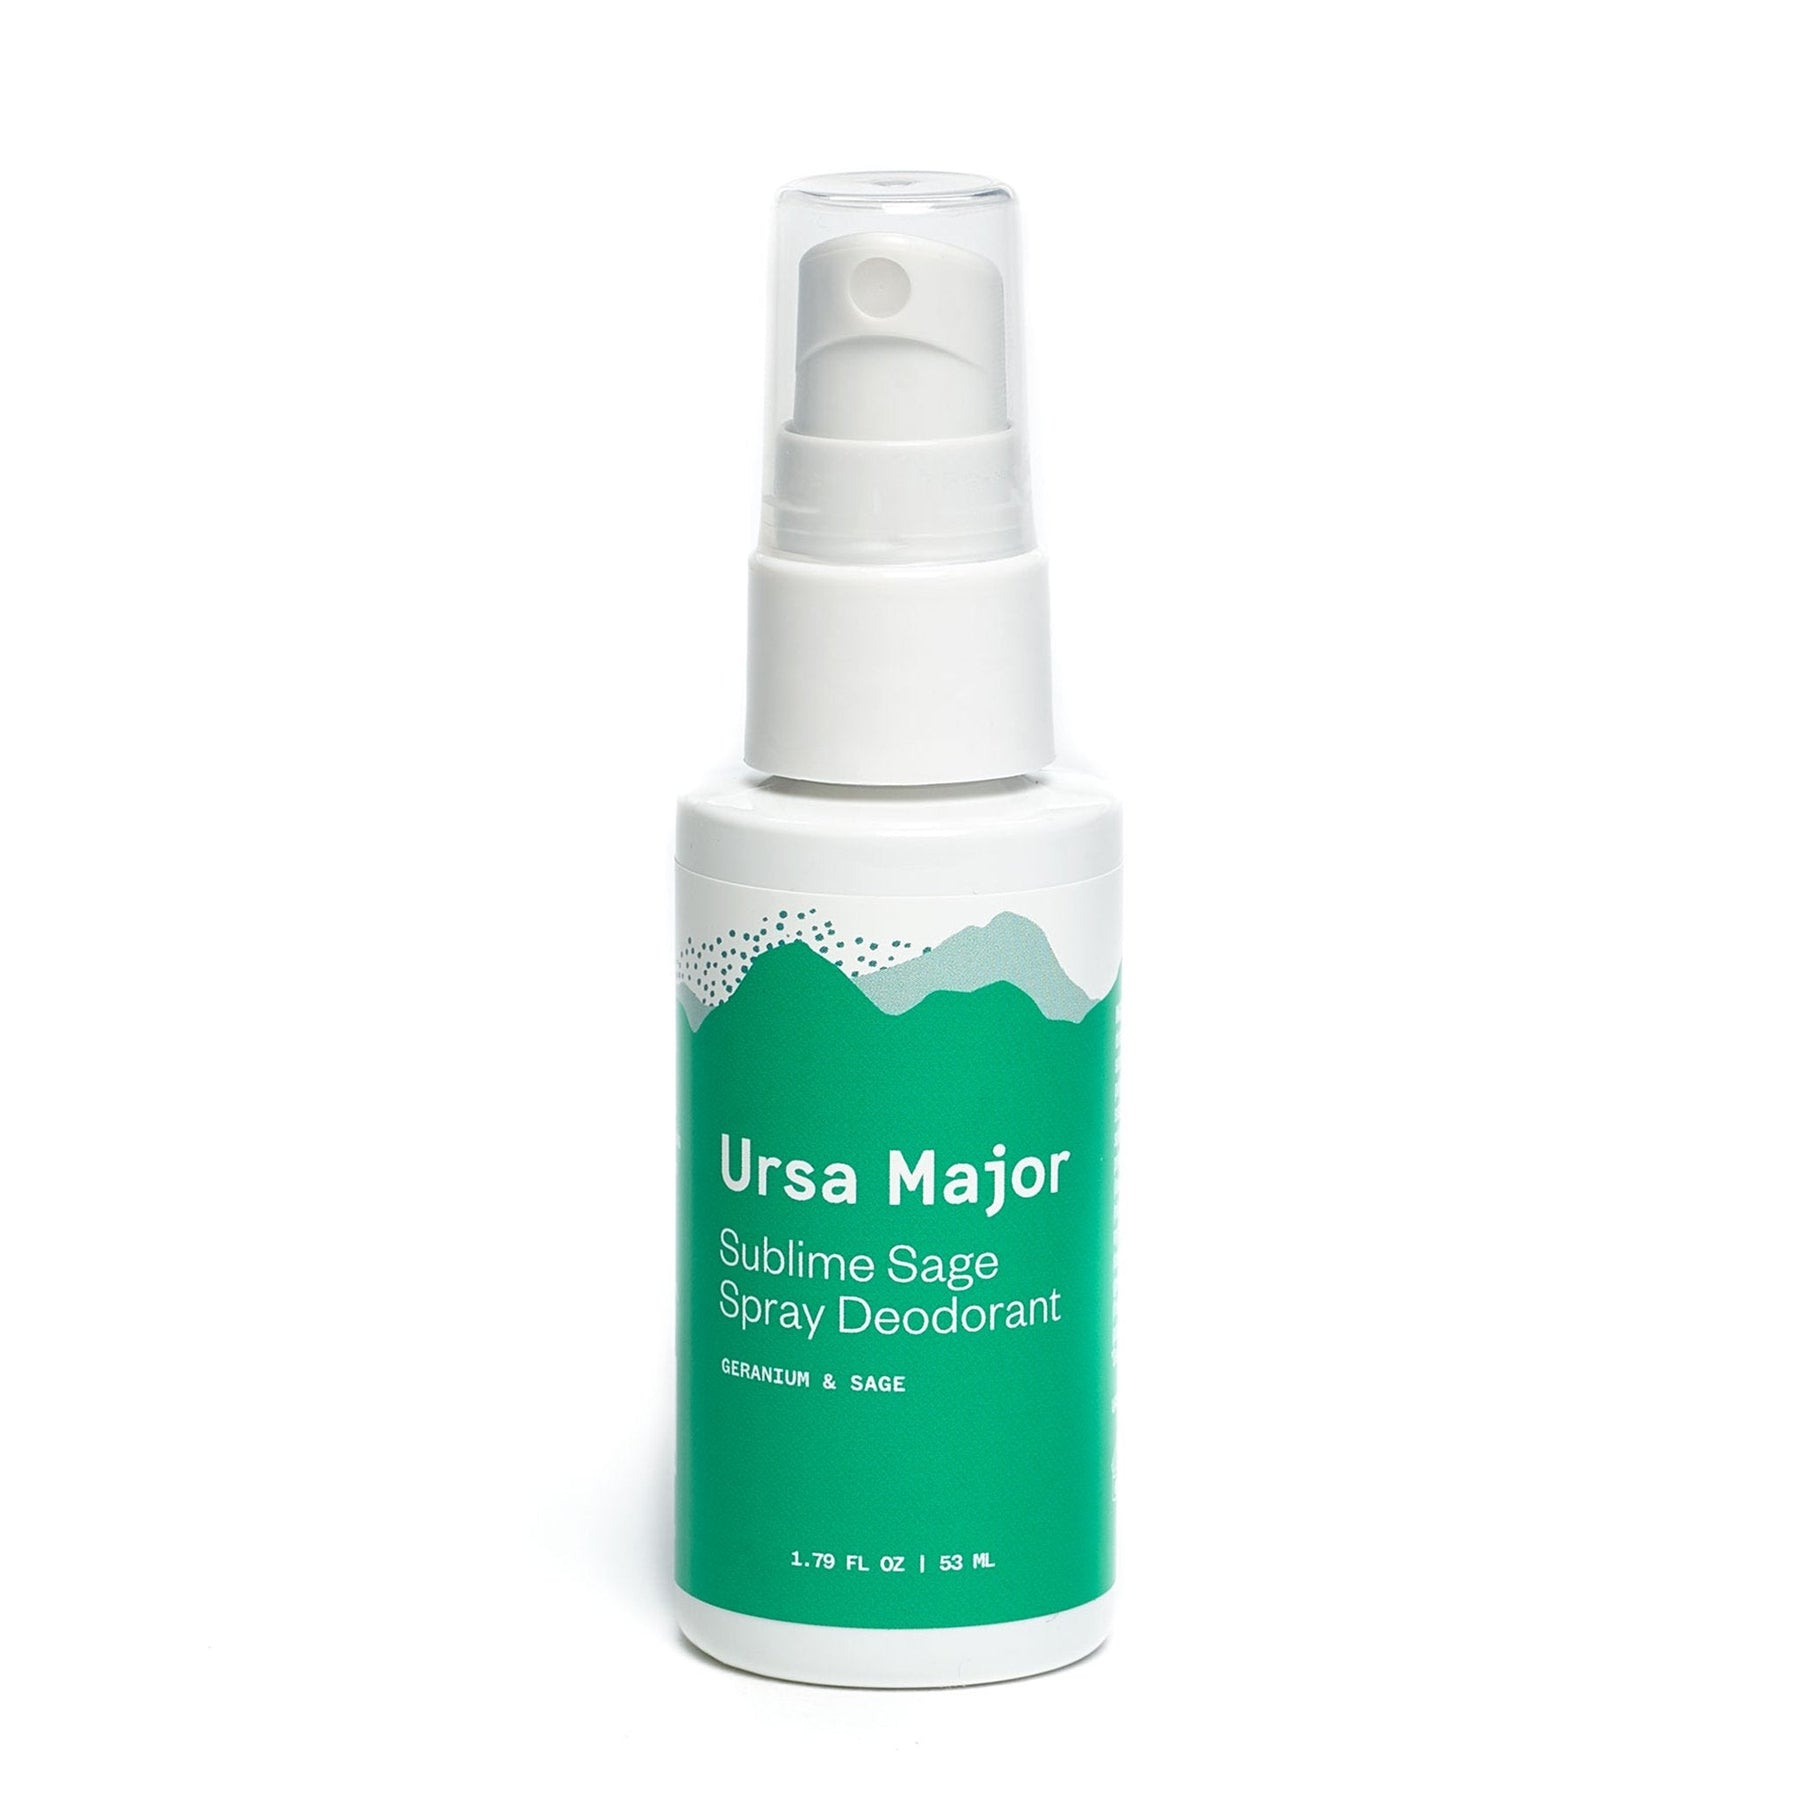 Ursa Major Sublime Sage Spray Deodorant